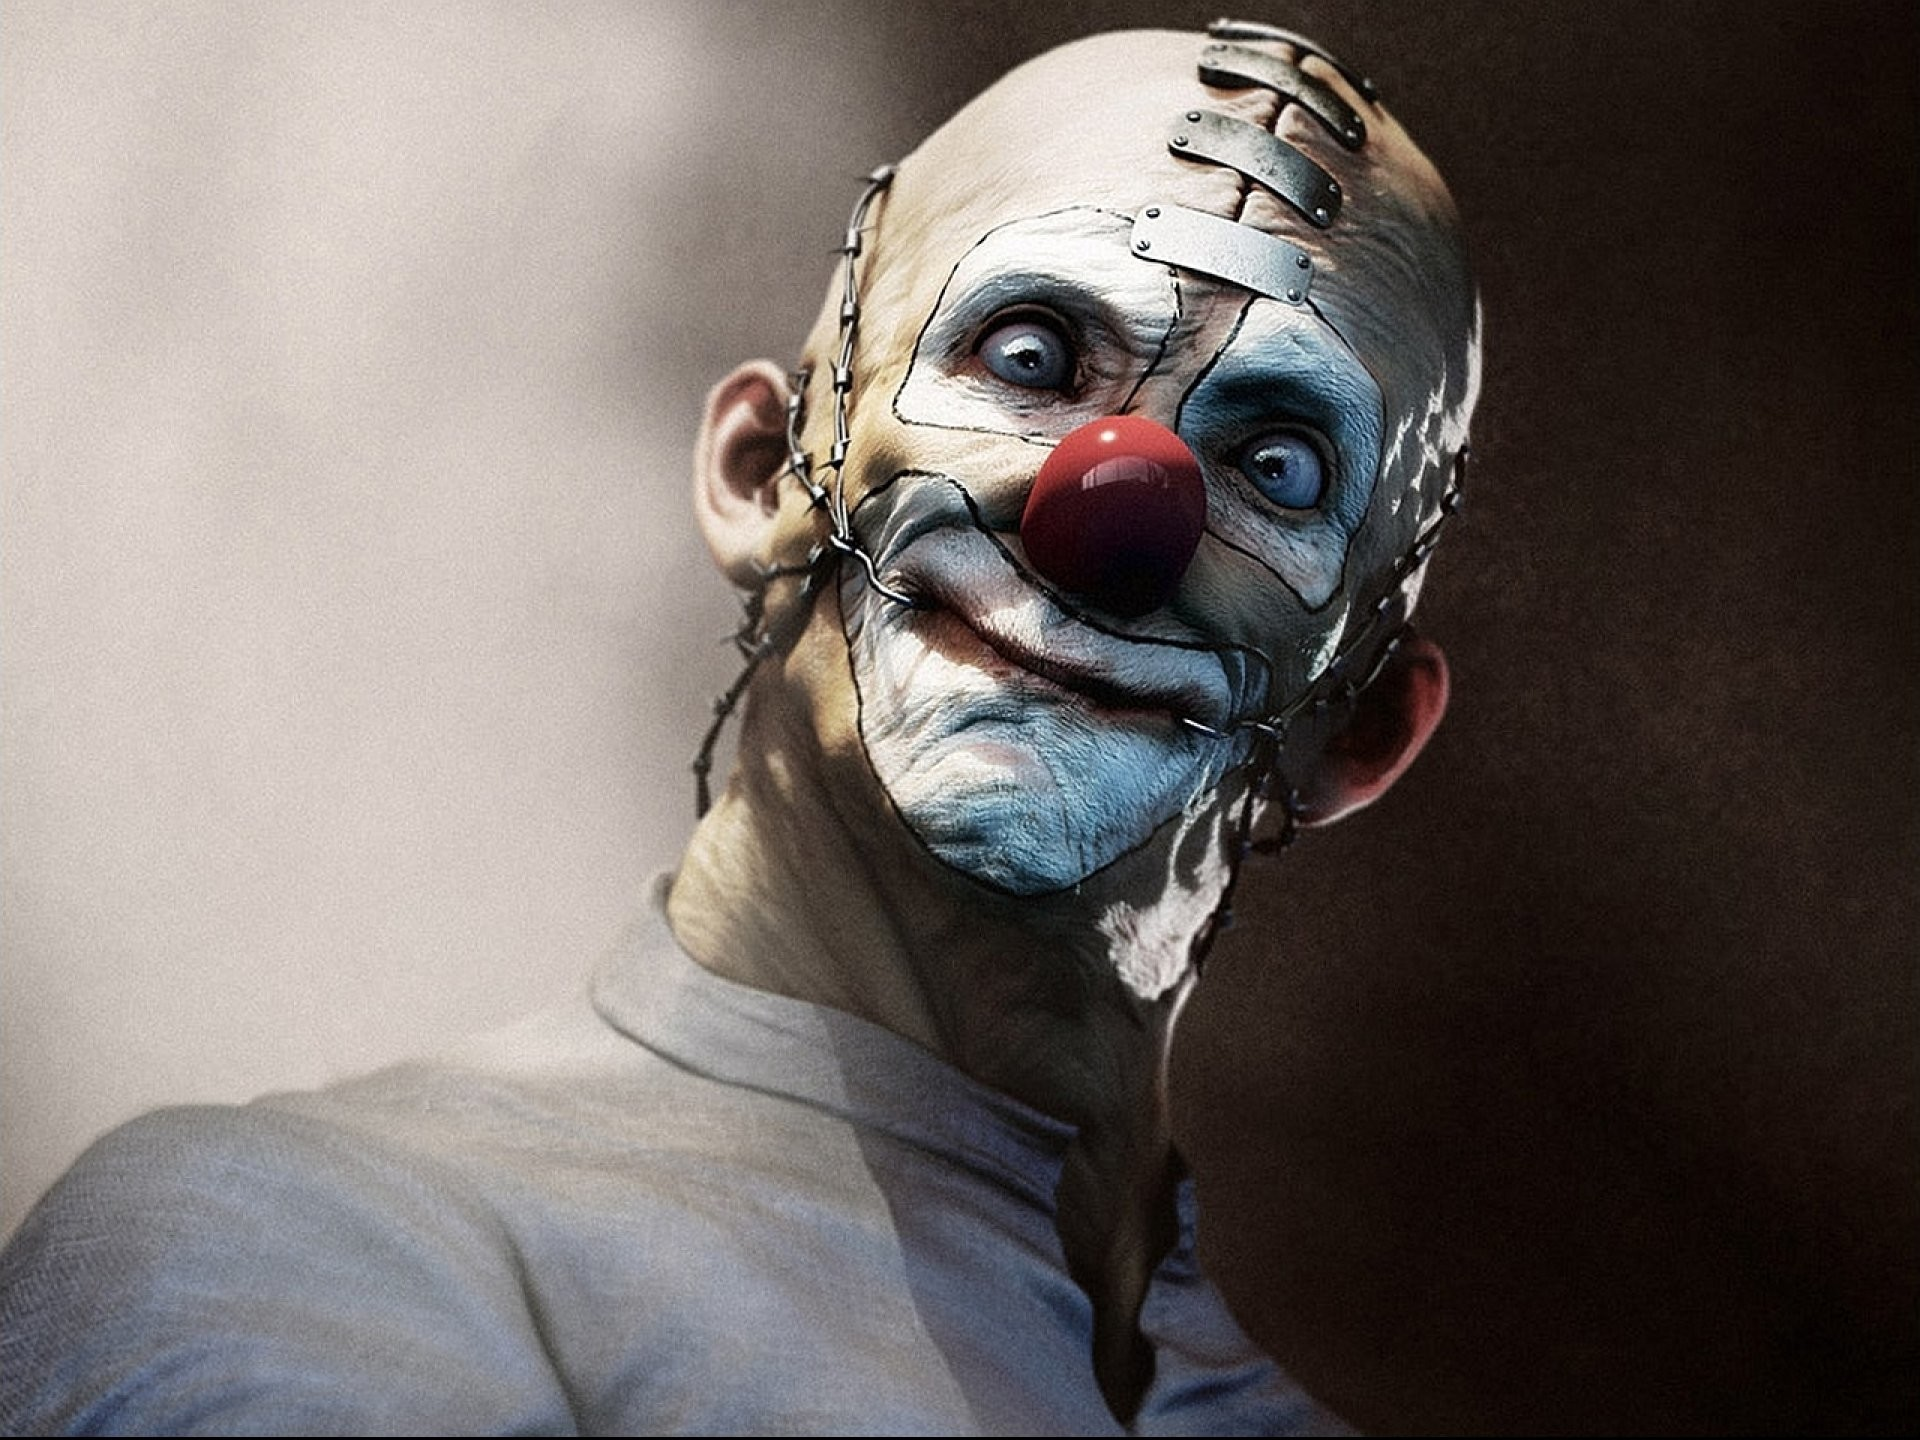 1920x1440 Scary Clown, HD Quality Cover, Olalla Casterou